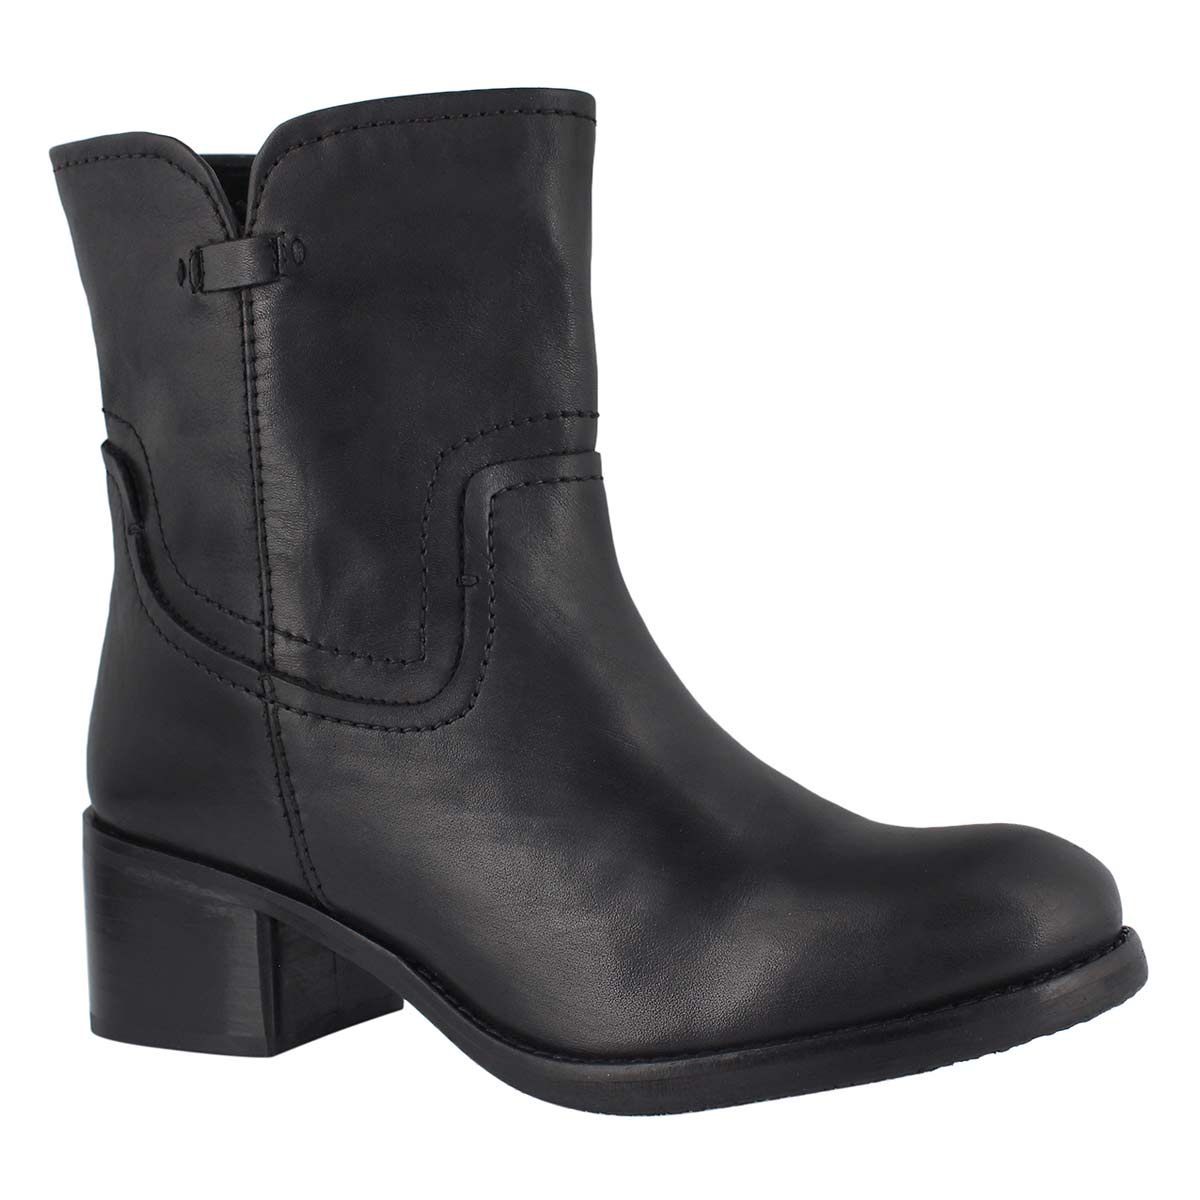 Lds Lynn black ankle boot